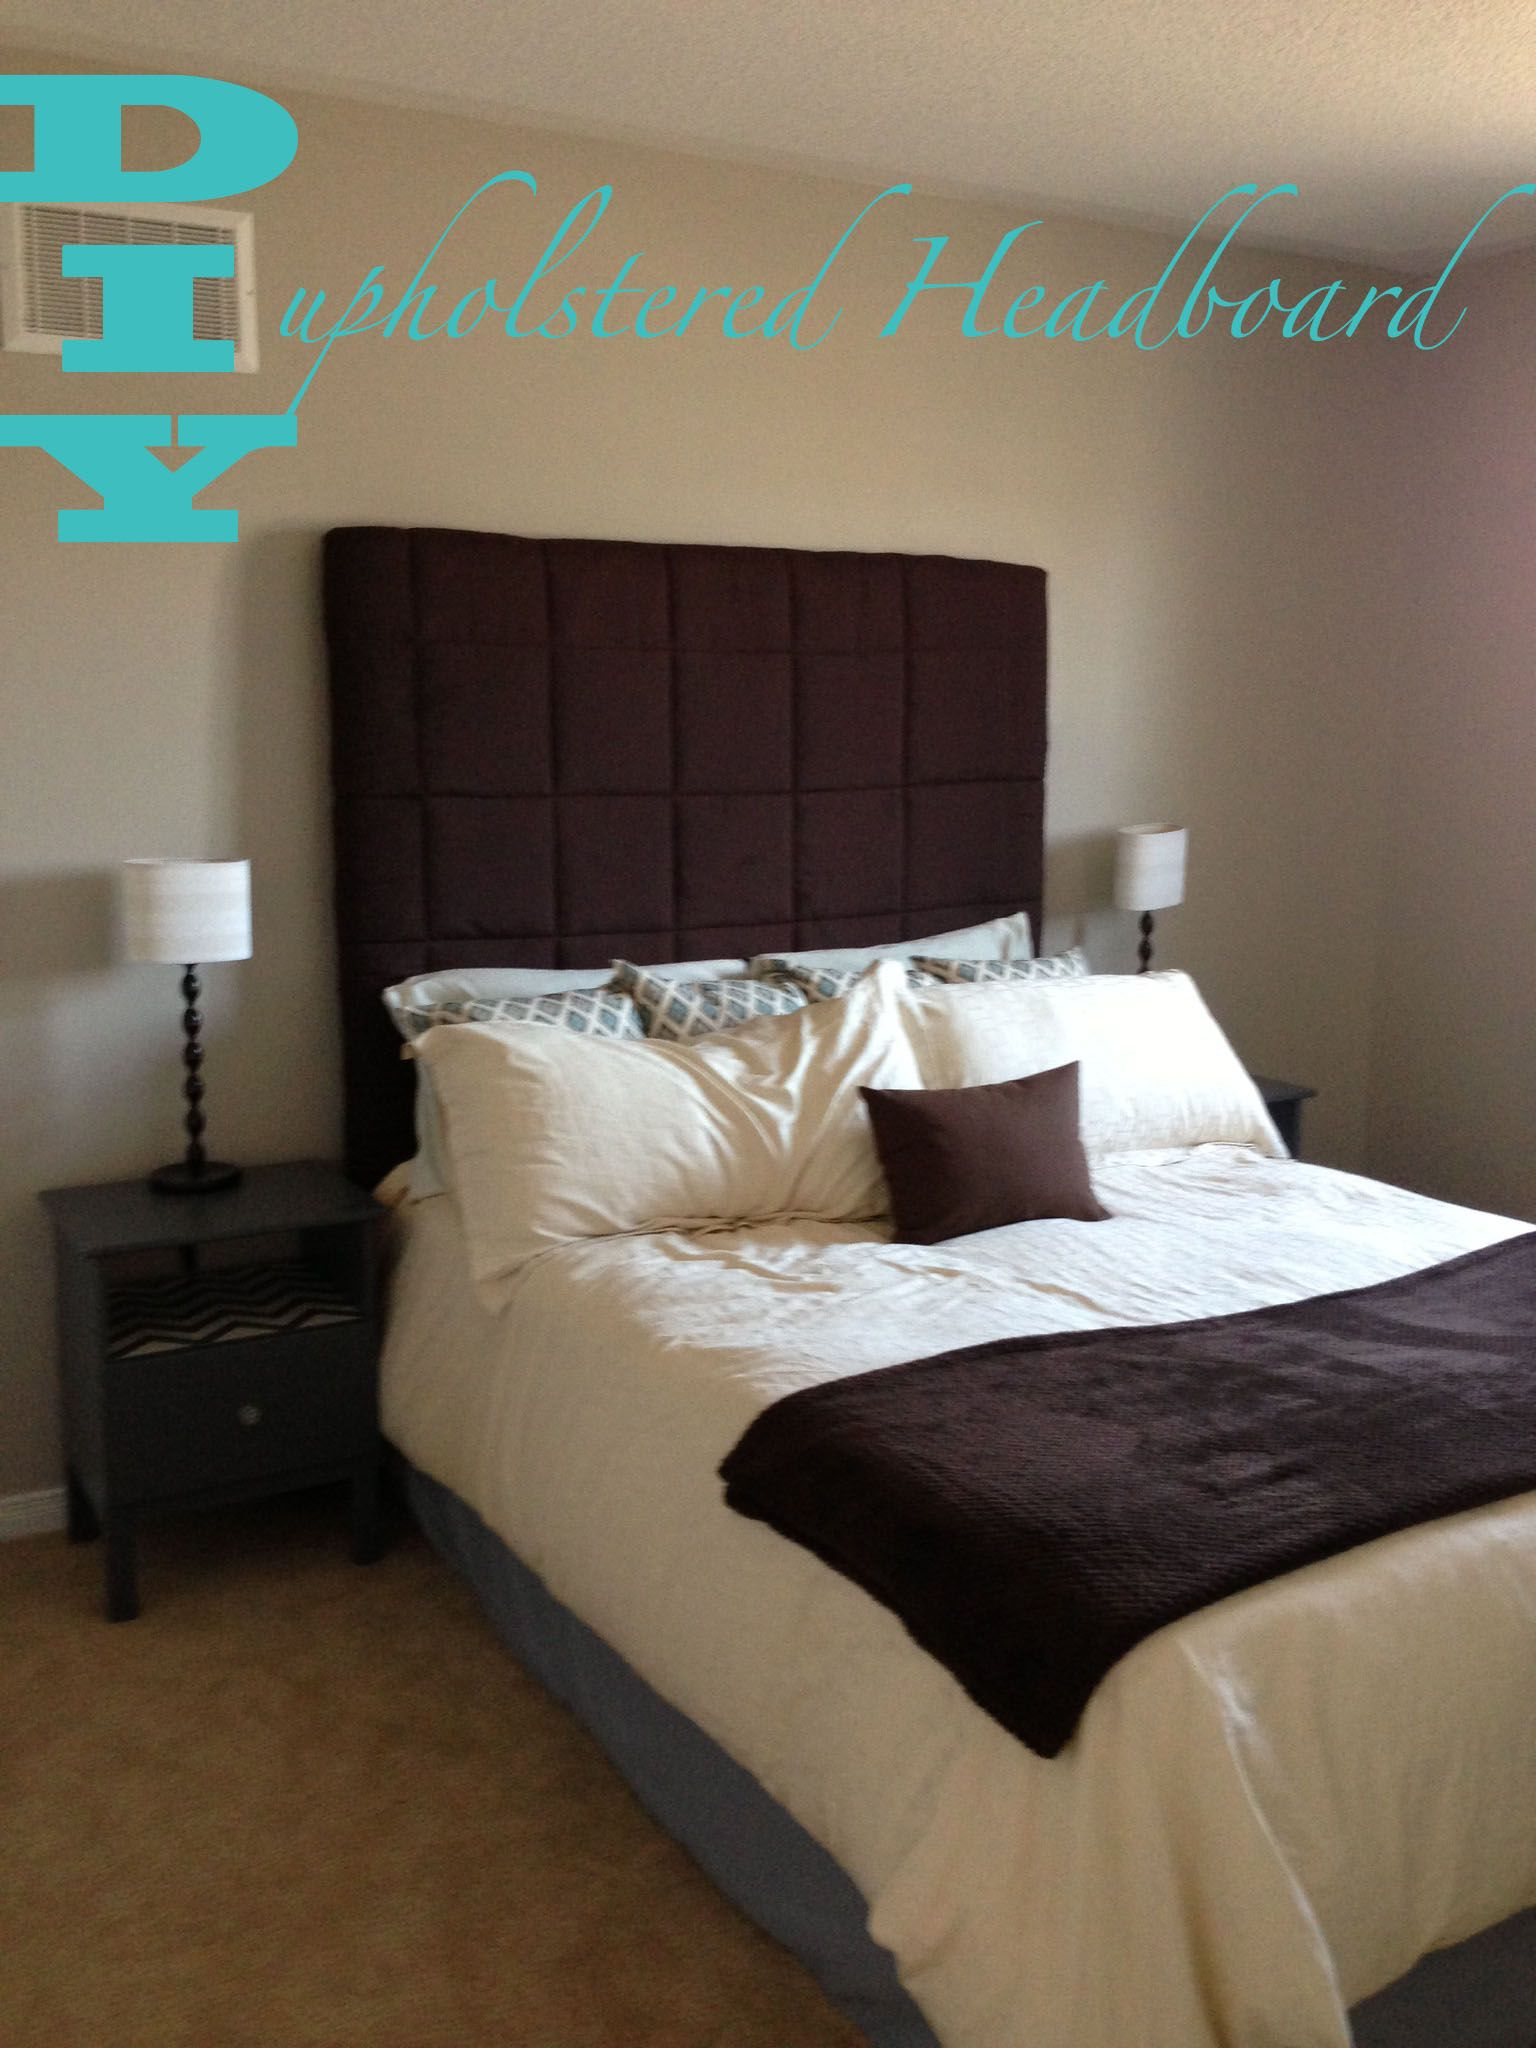 Quick And Easy Upholstered Headboard Diy Headboard Upholstered